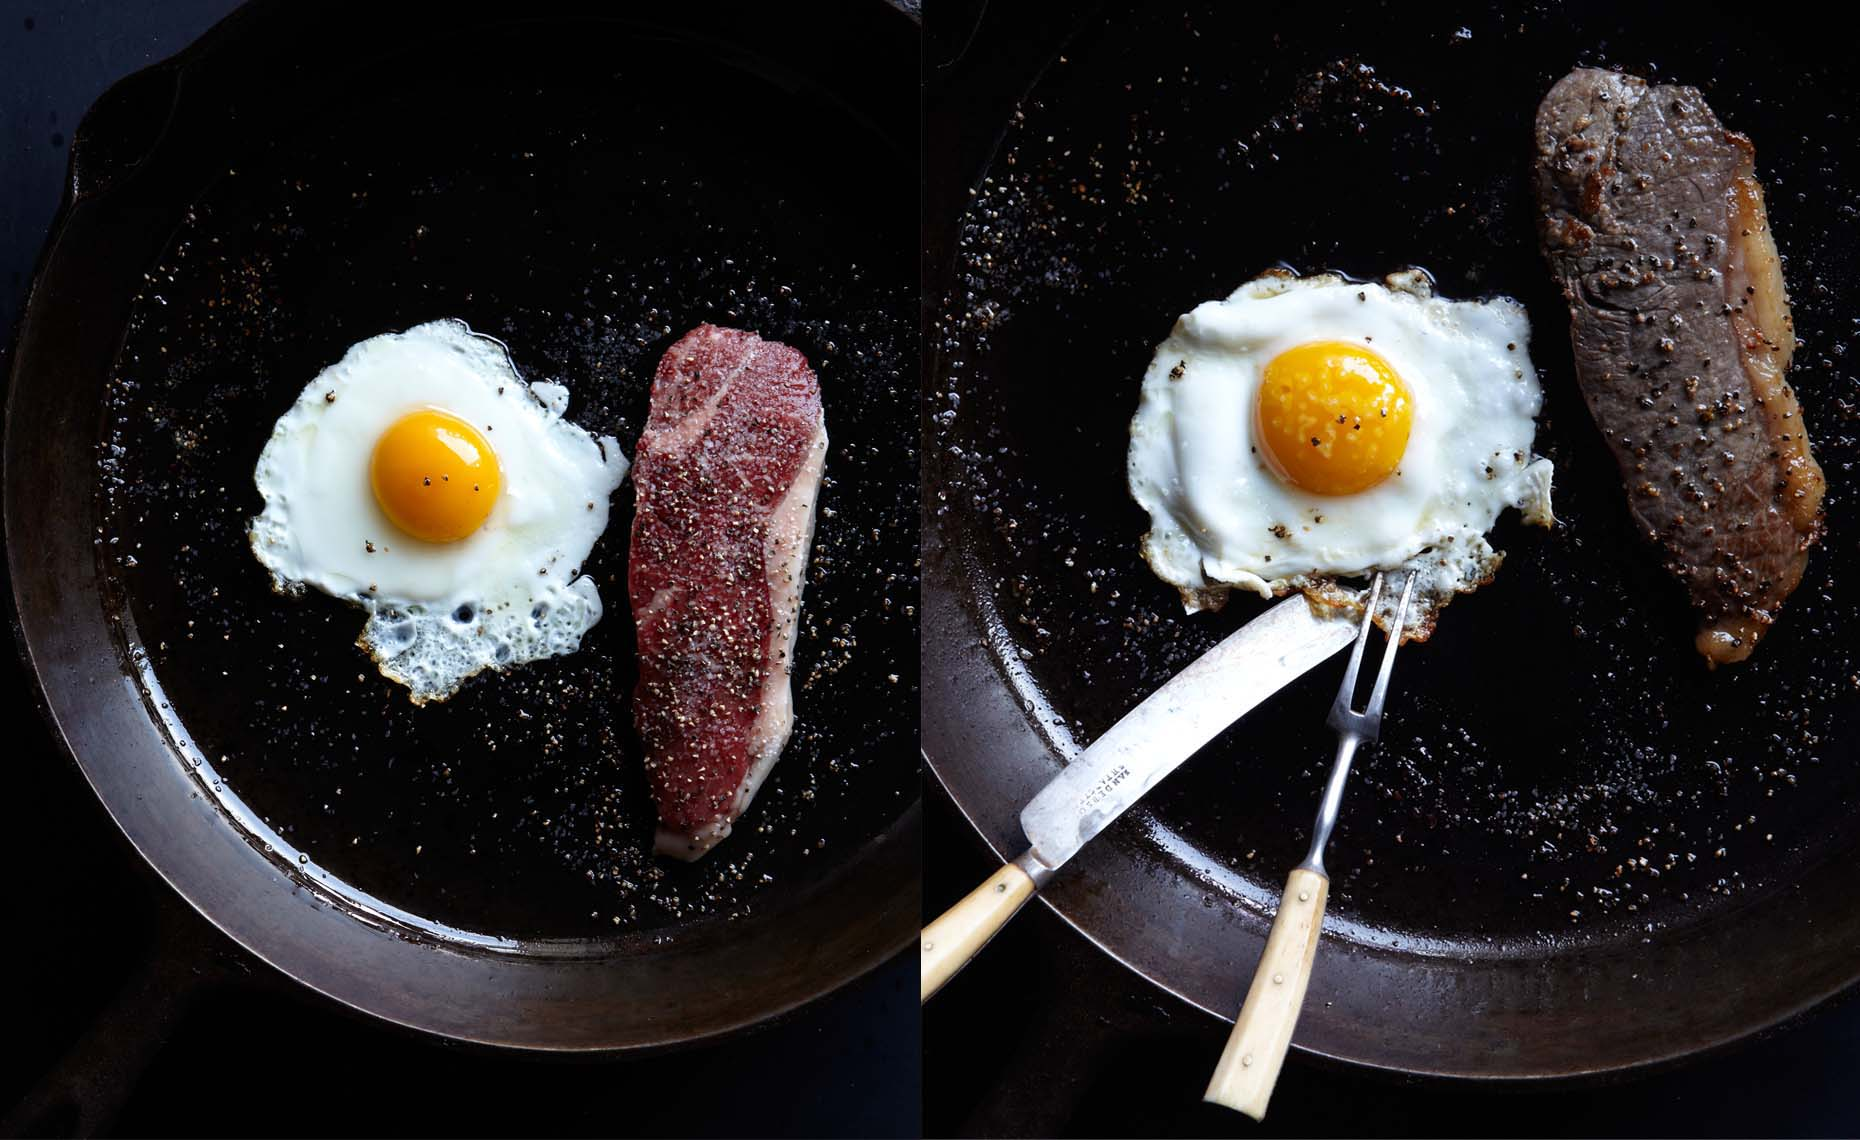 HGFT_STEAK_EGGS.jpg